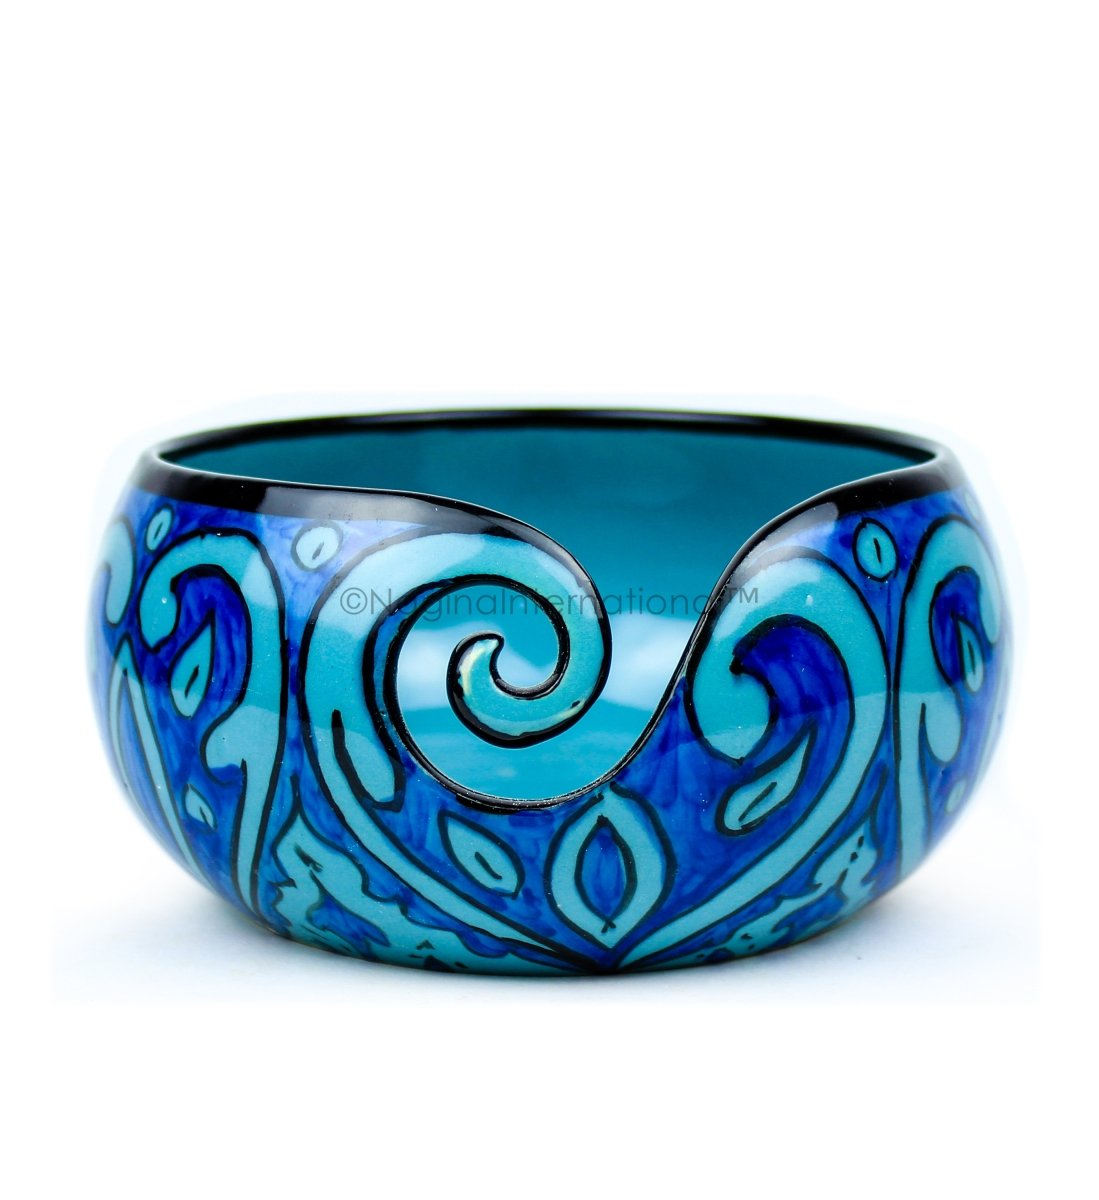 Nagina International Ceramic Attractively Hand Painted Gorgeous Stoneware Yarn Ball Storage Bowl with Innovative Dispensing Curl | Knitting & Crochet Accessions (Large, Deep Water Blue)